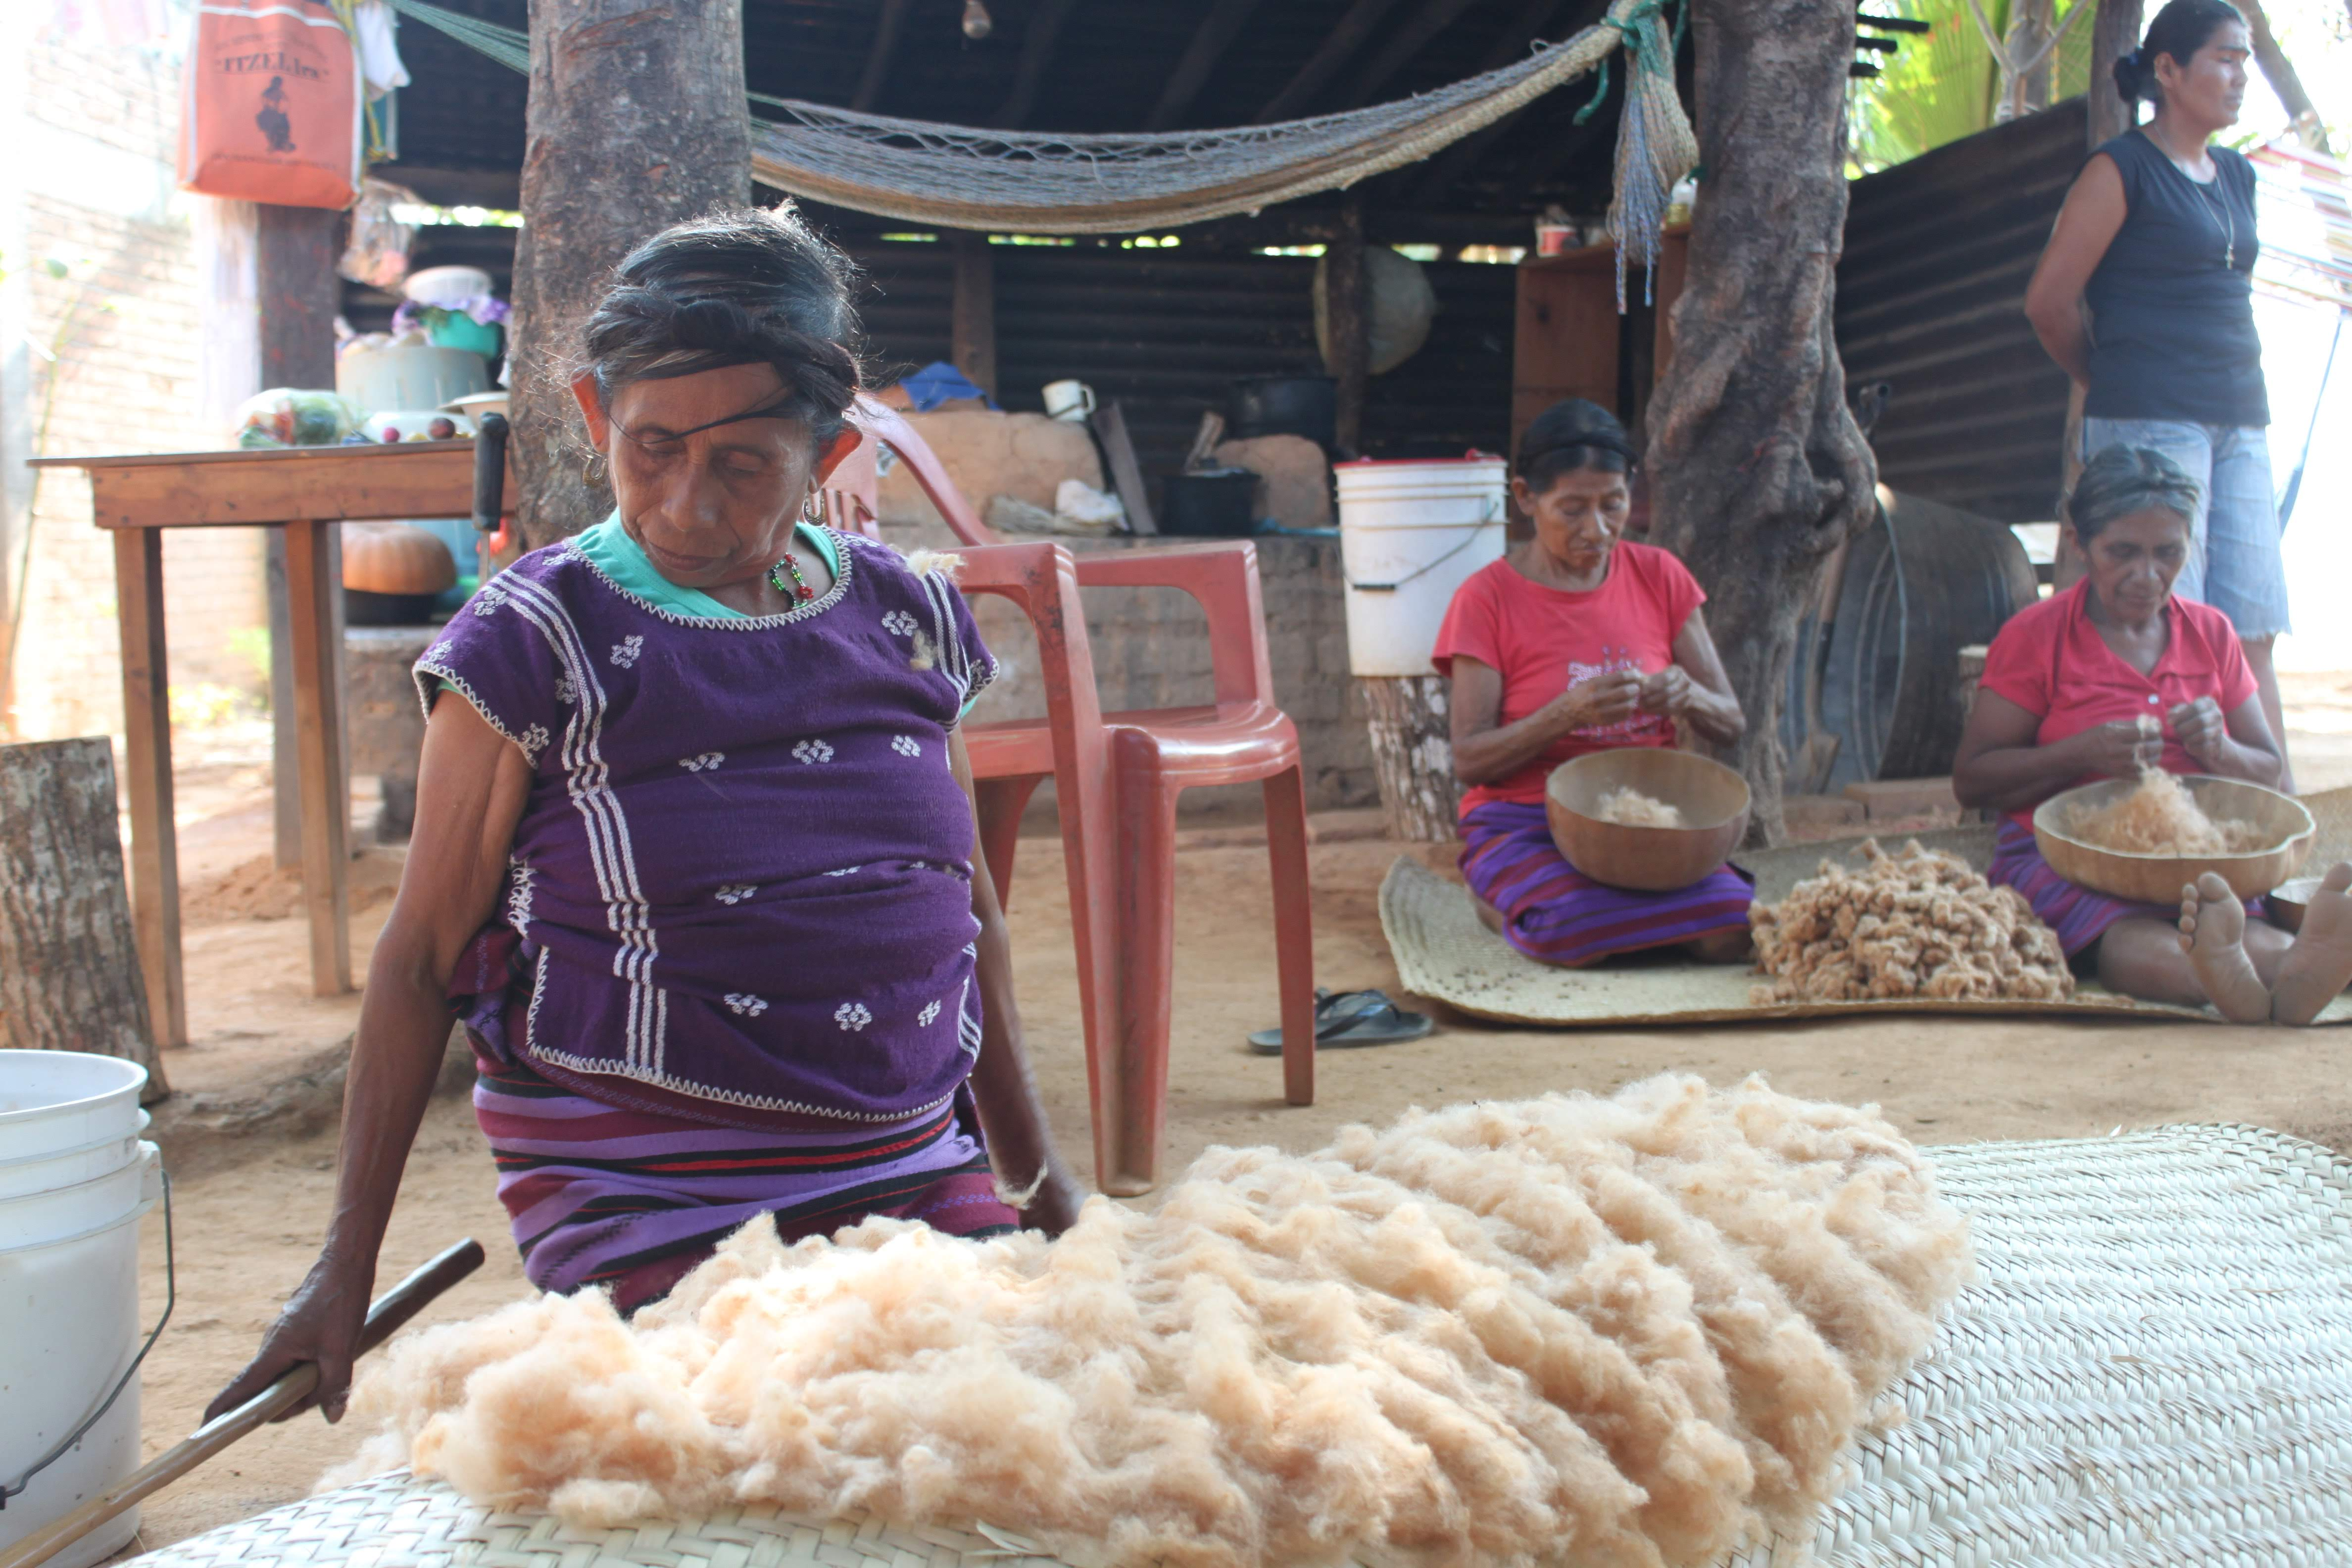 Mexico women work in weaving wool into yarn as part of womens economic empowerment workshops